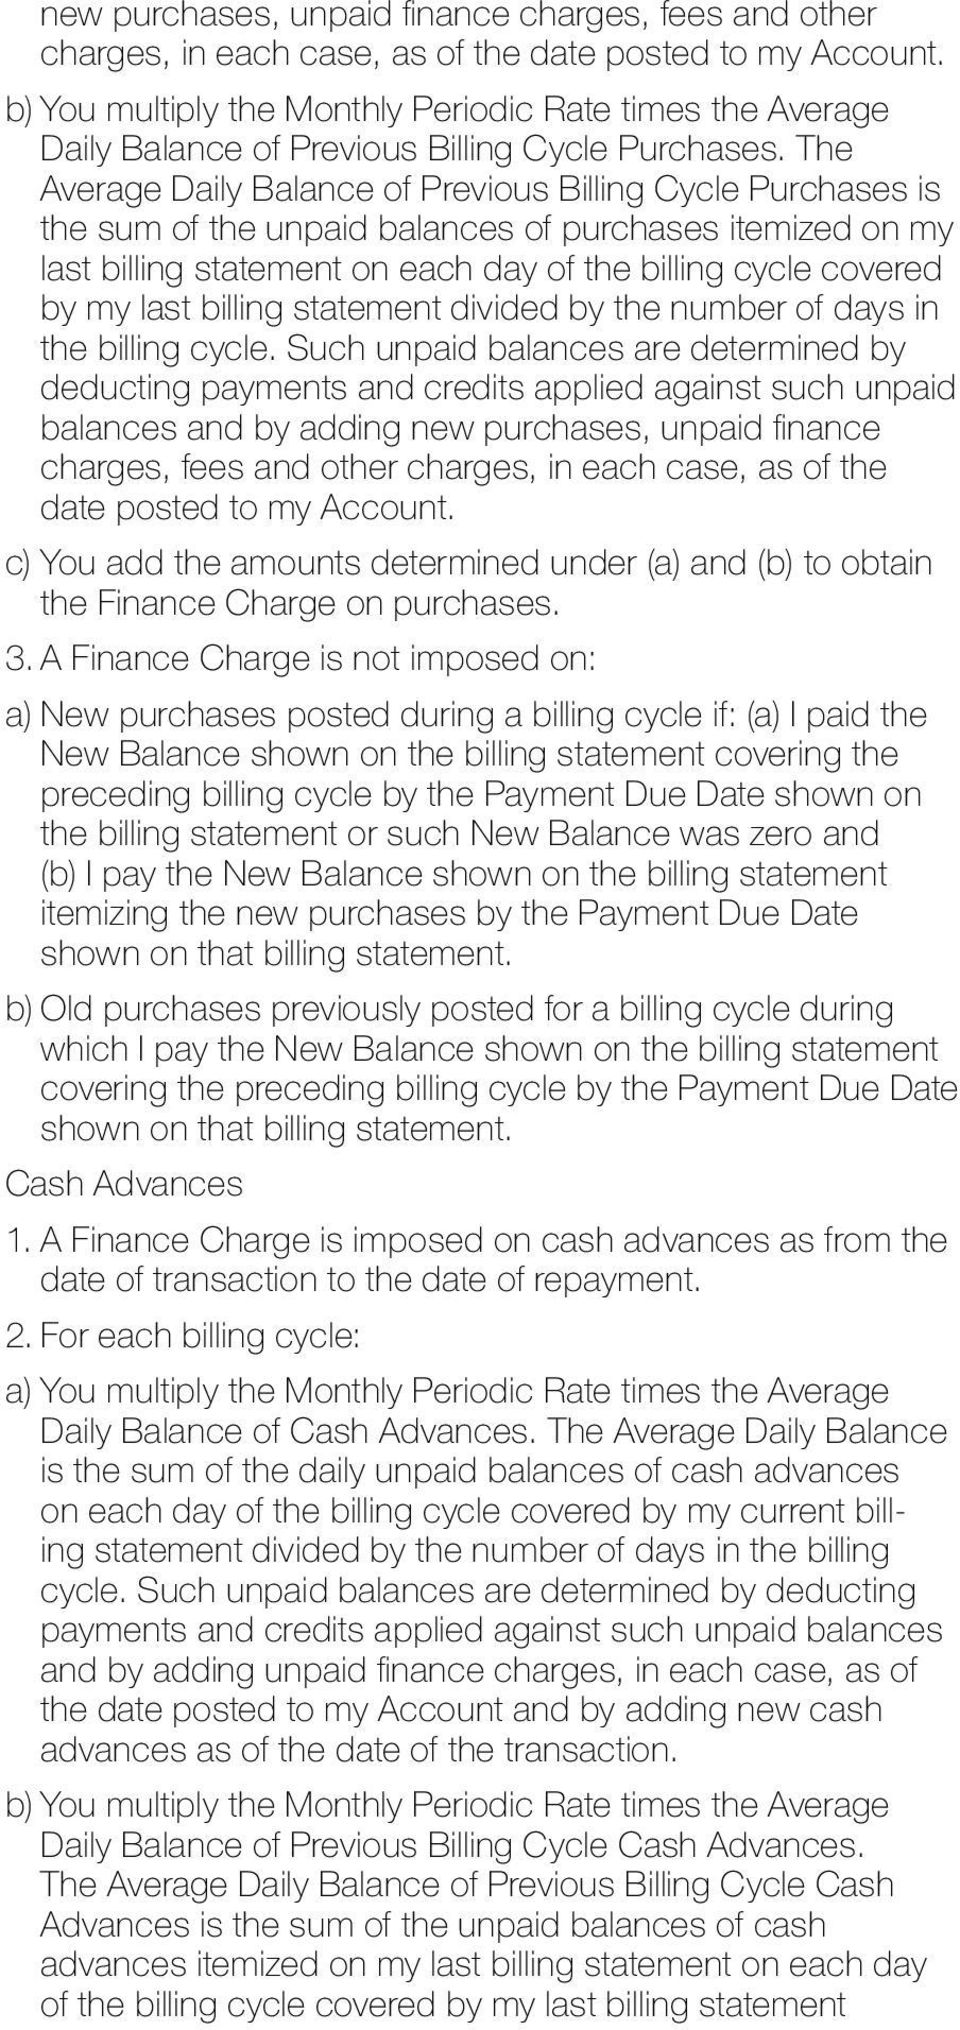 The Average Daily Balance of Previous Billing Cycle Purchases is the sum of the unpaid balances of purchases itemized on my last billing statement on each day of the billing cycle covered by my last